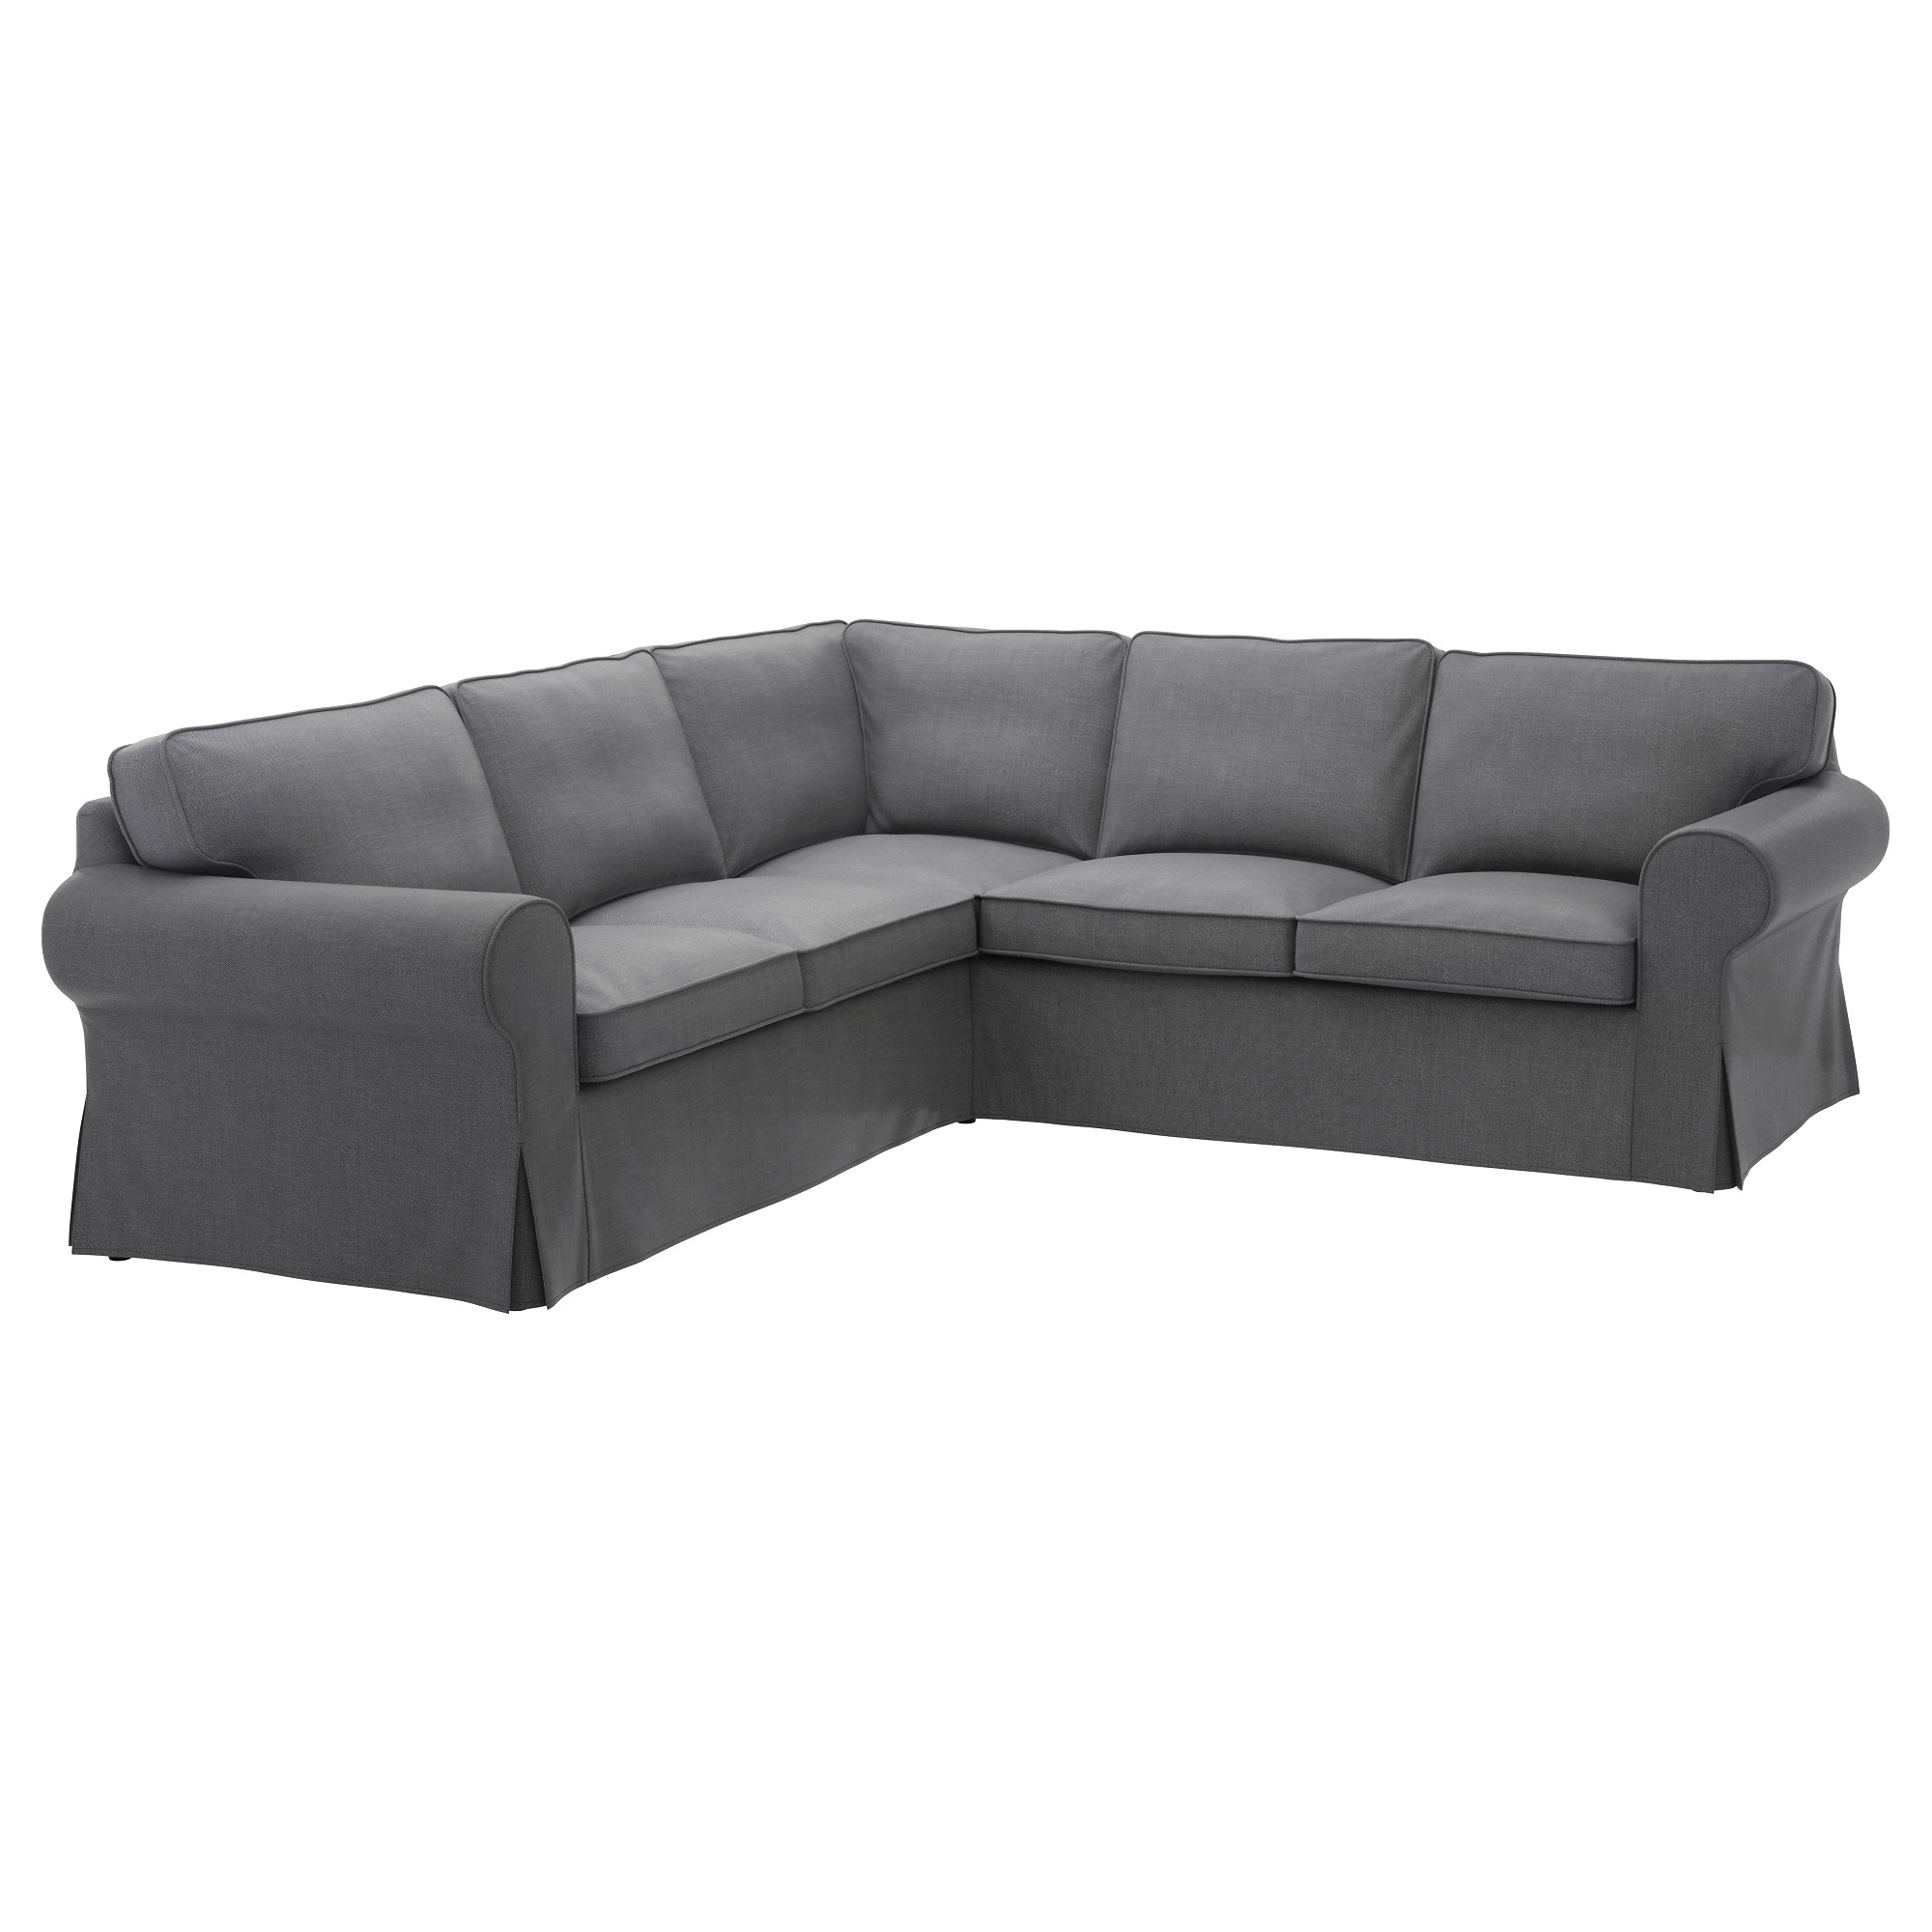 Fabric Sofas Modern Contemporary Ikea Regarding Contemporary Fabric Sofas (Image 11 of 15)